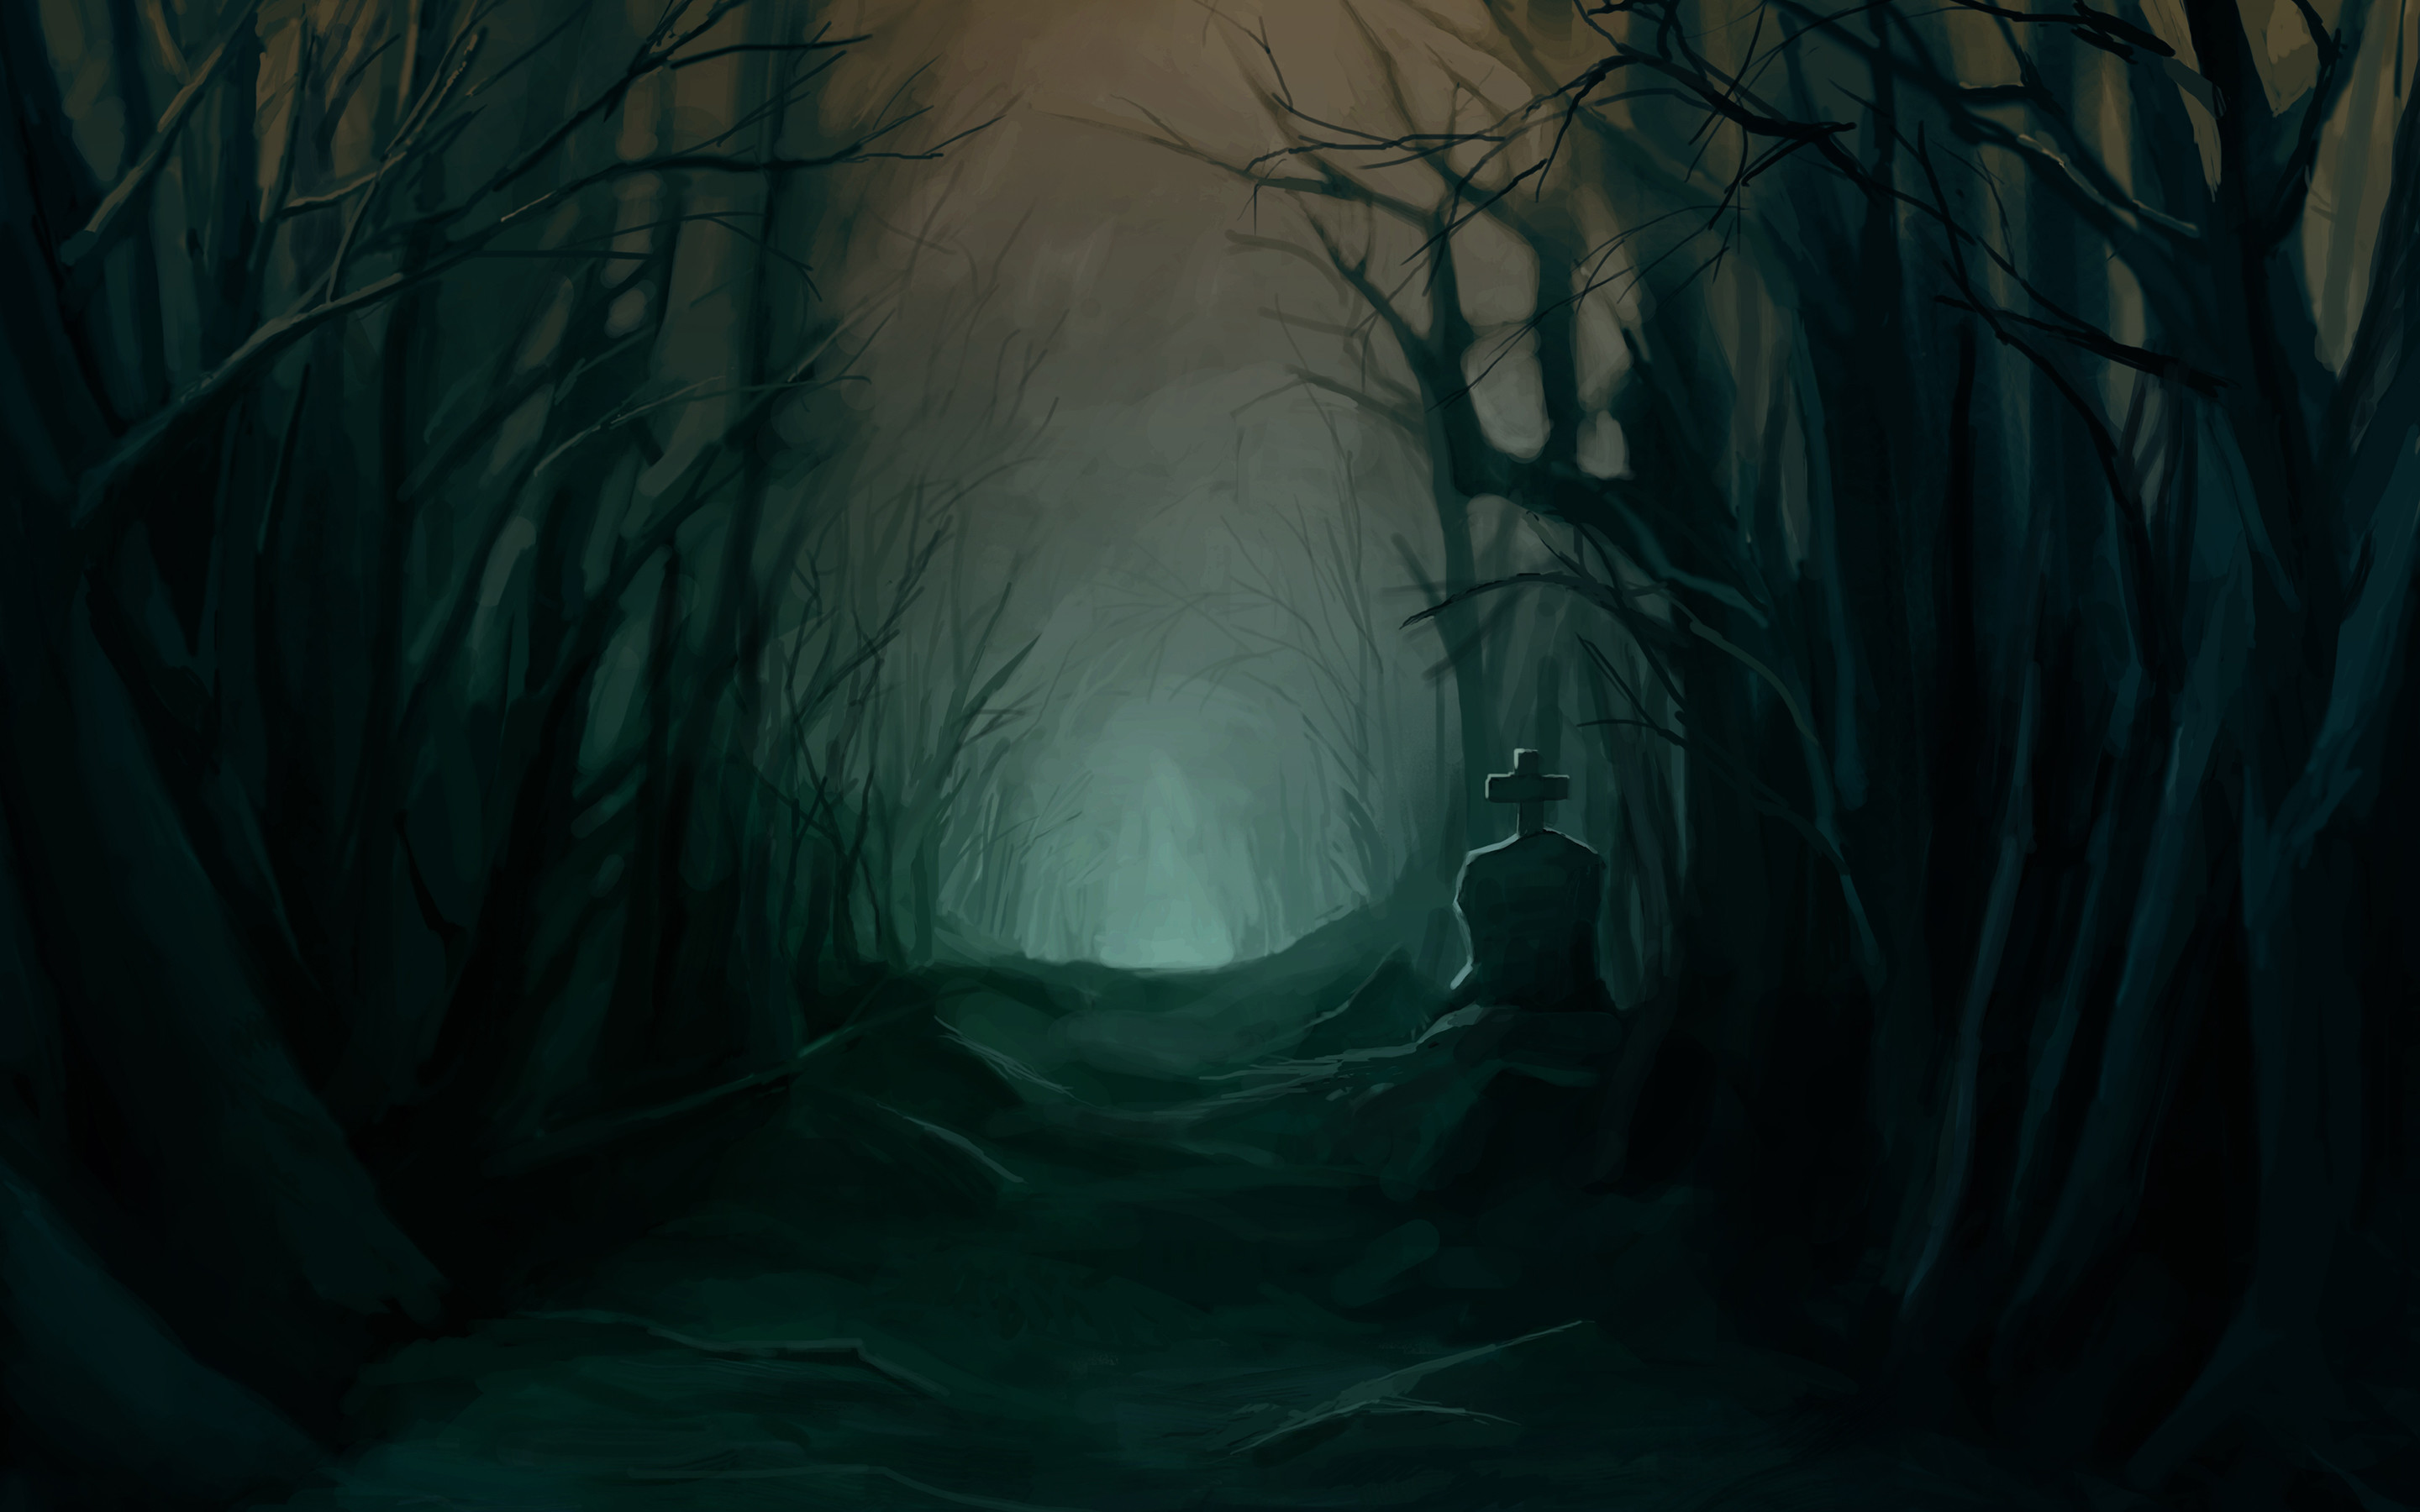 Tombstone dark halloween trees forest woods night scary spooky creepy glow  cemetery grave landscapes wallpaper | | 42433 | WallpaperUP